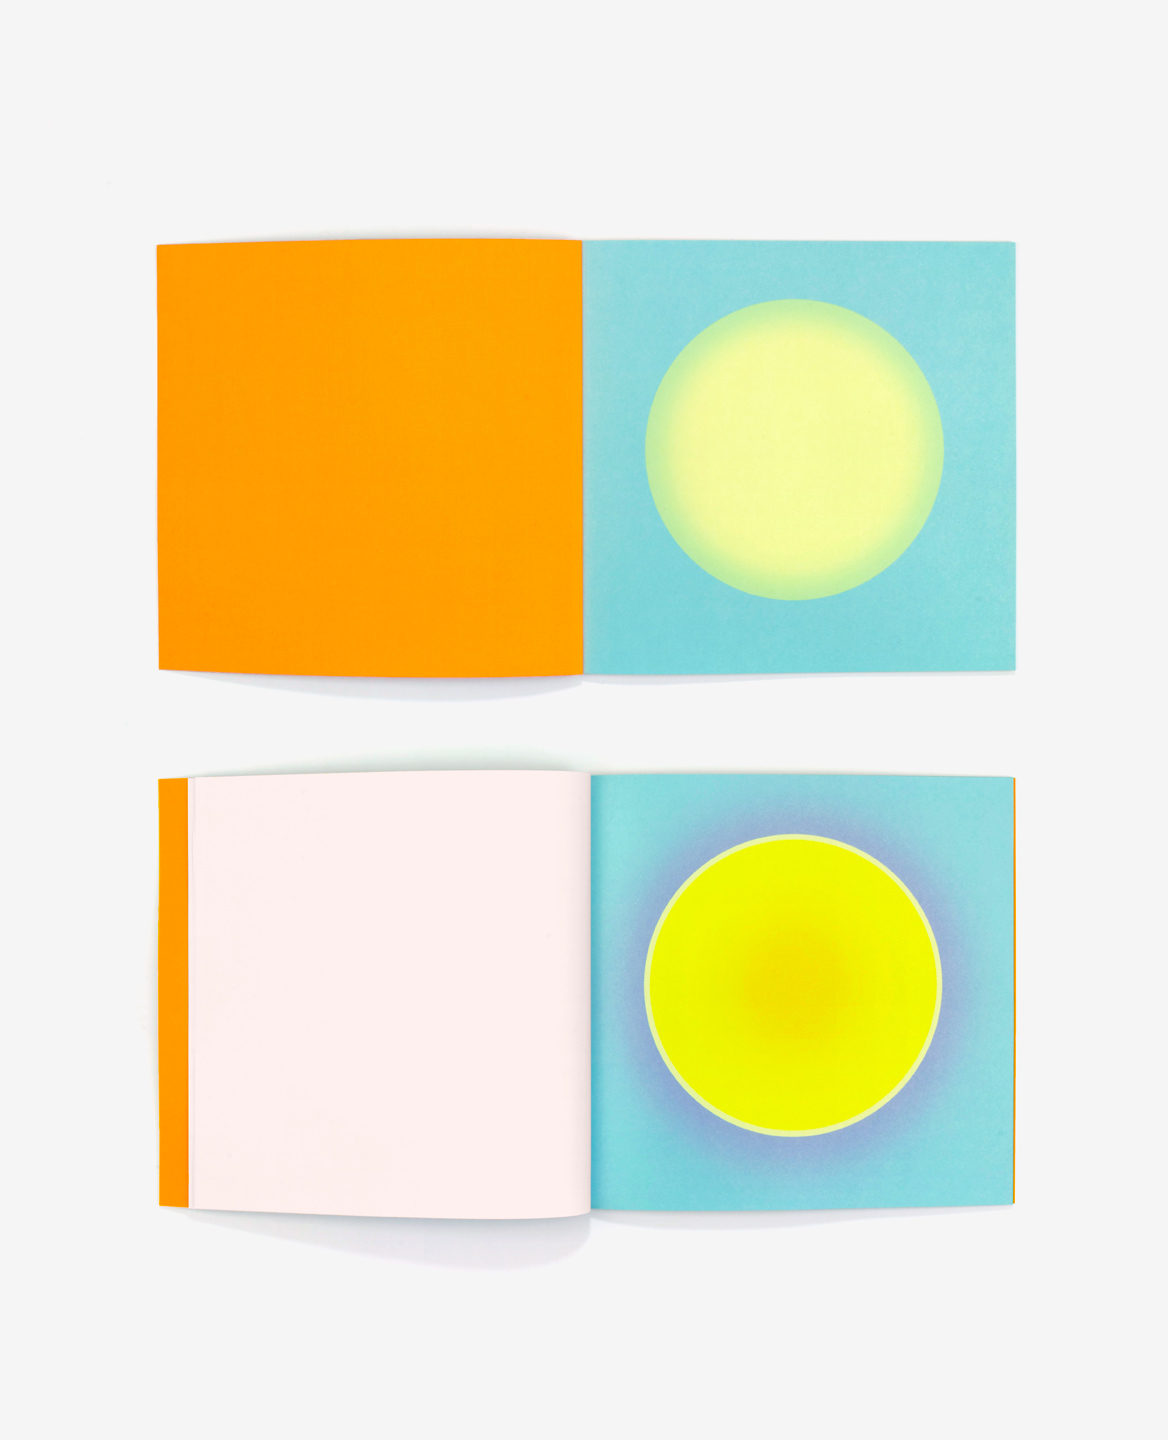 Yellow morning suns from the book Au soleil by Fanette Mellier and published by Éditions du livre